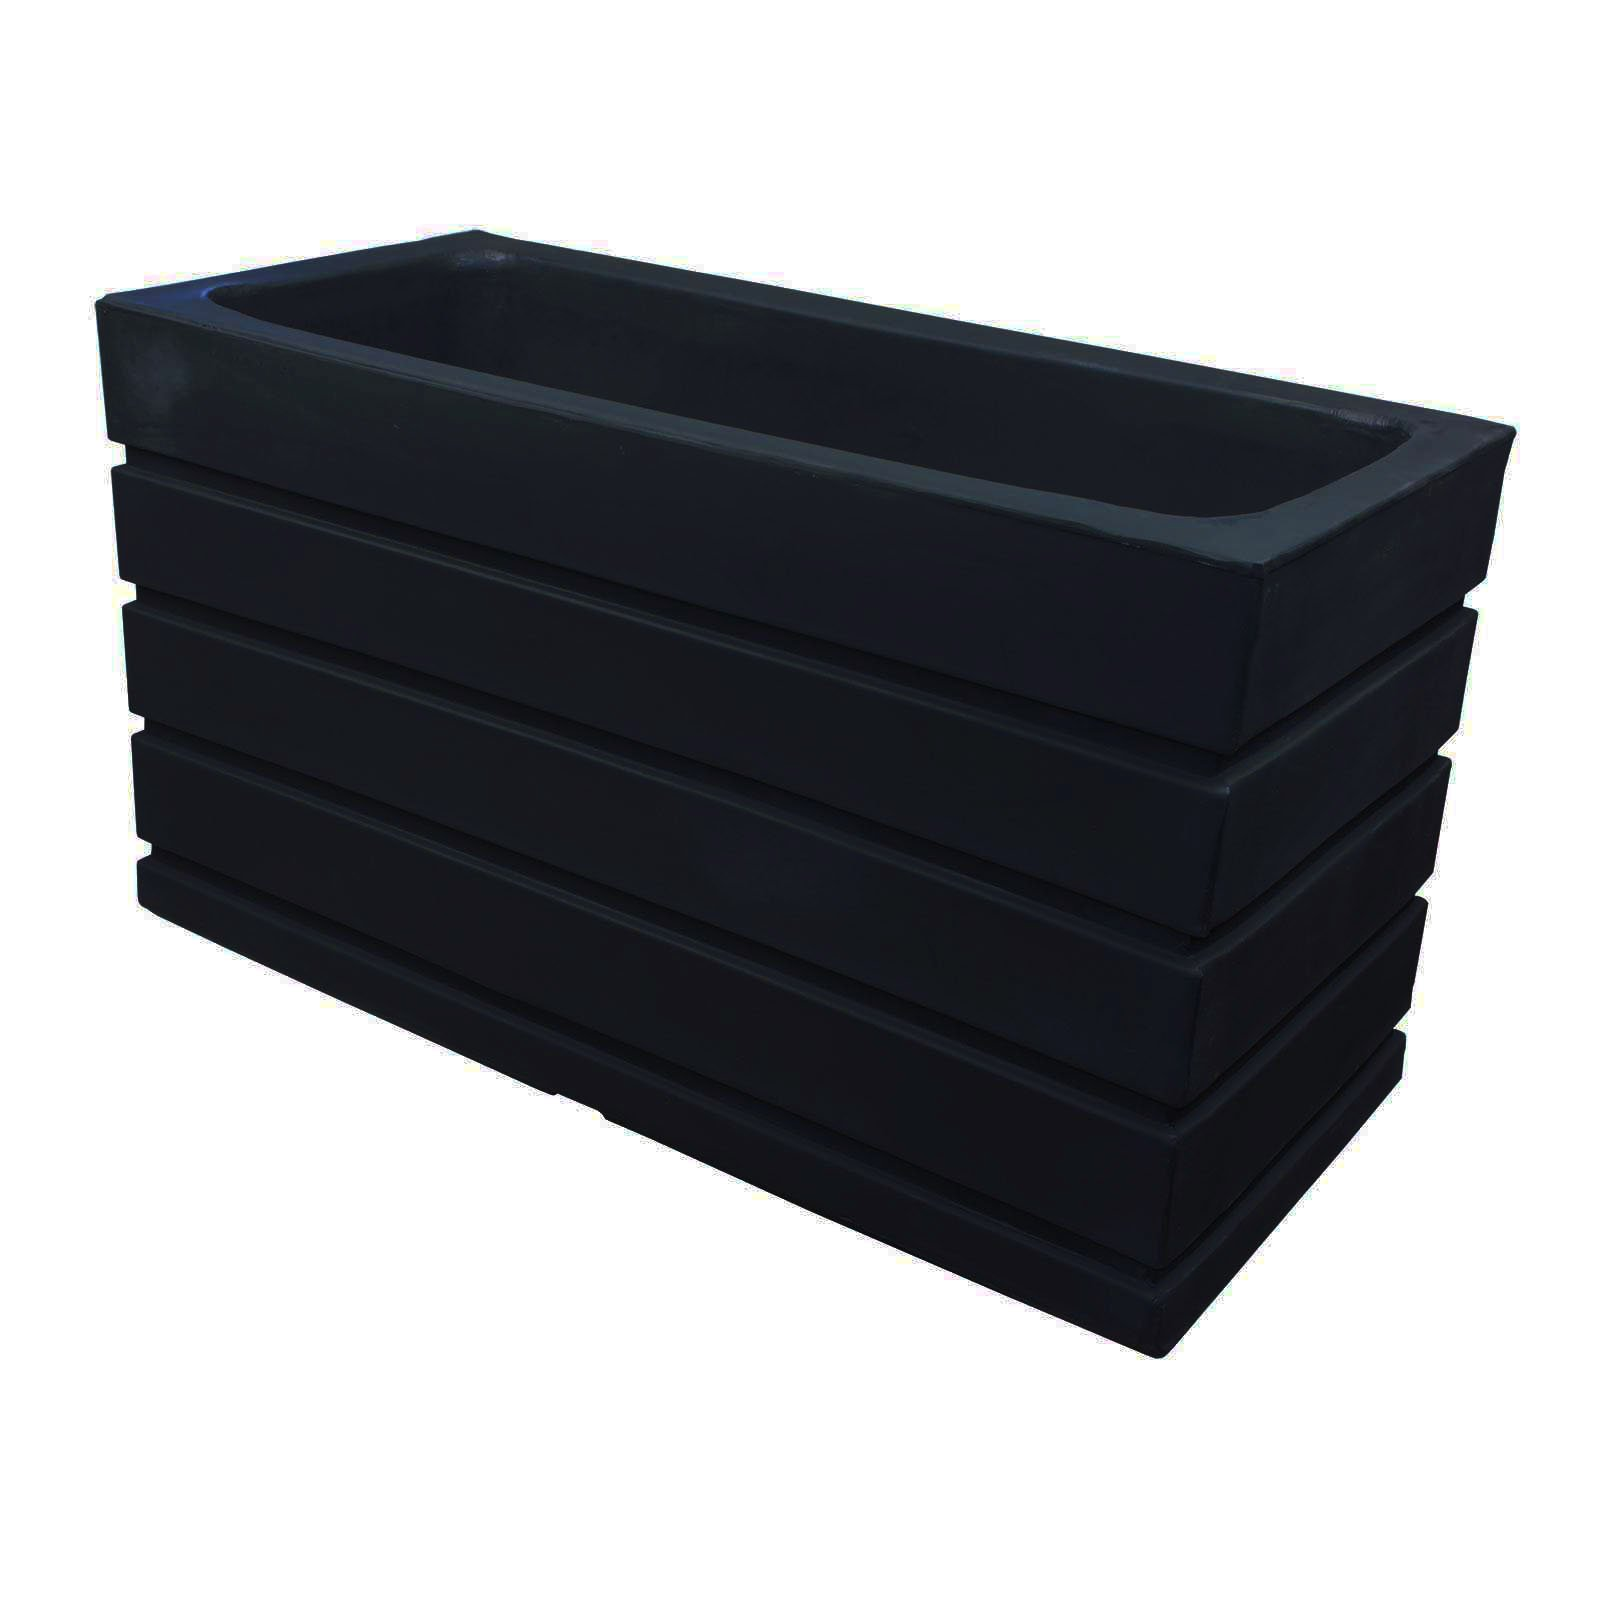 Large Plastic Planter Boxes - Ellis by Crescent Garden